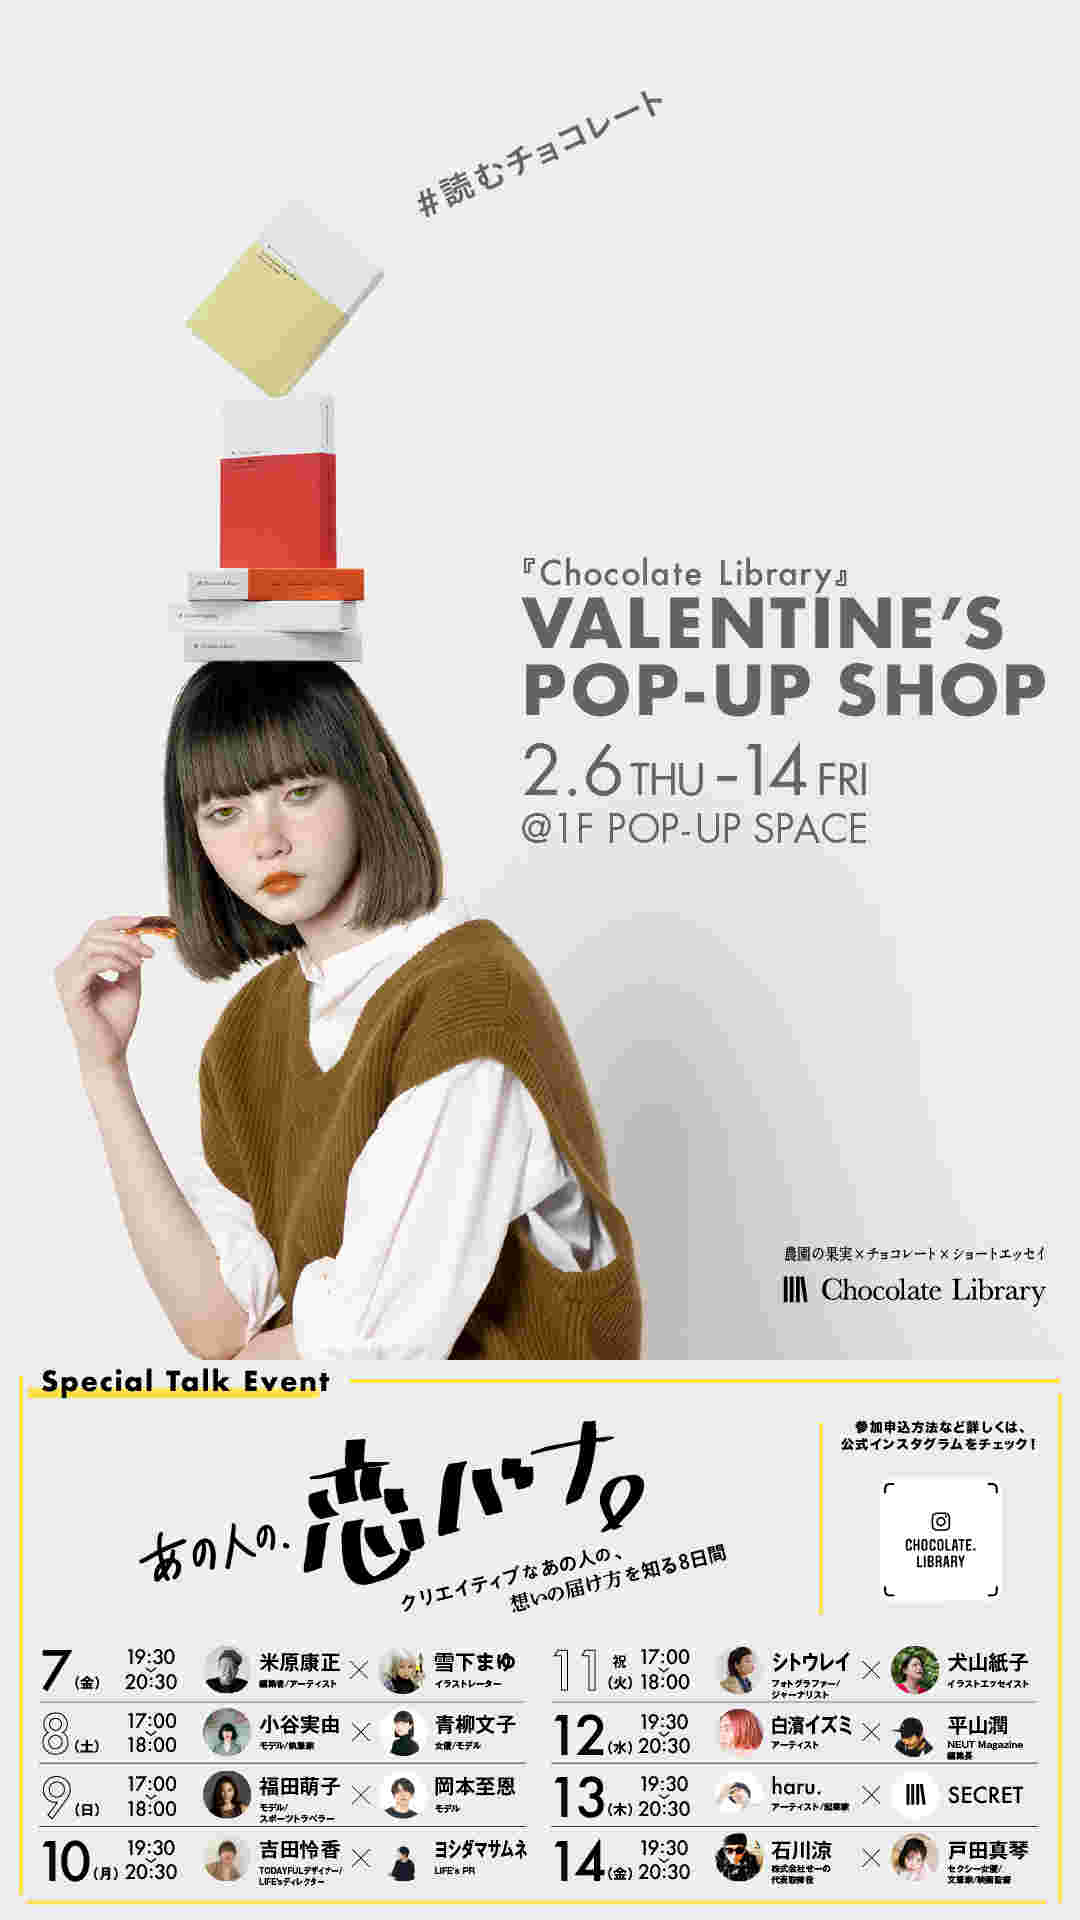 渋谷PARCOのChocolate Library概要画像